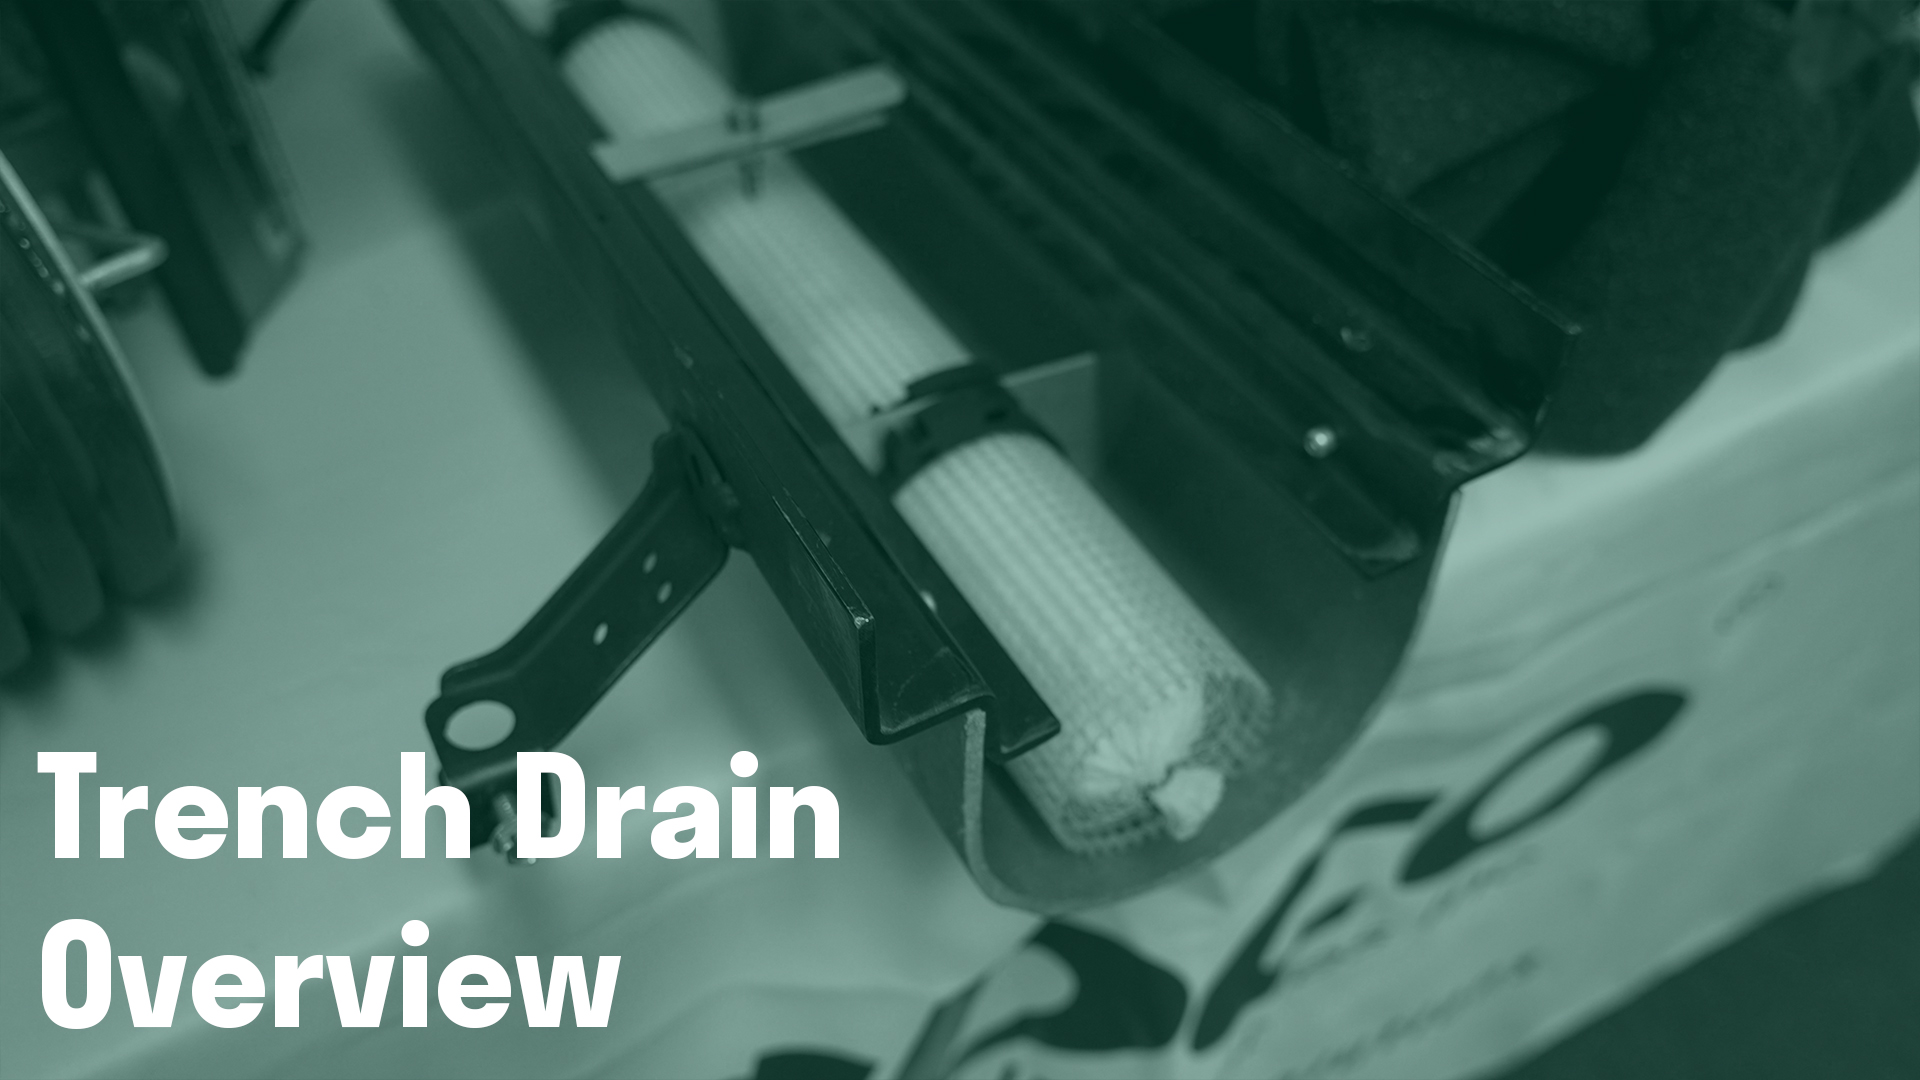 Trench Drain Overview